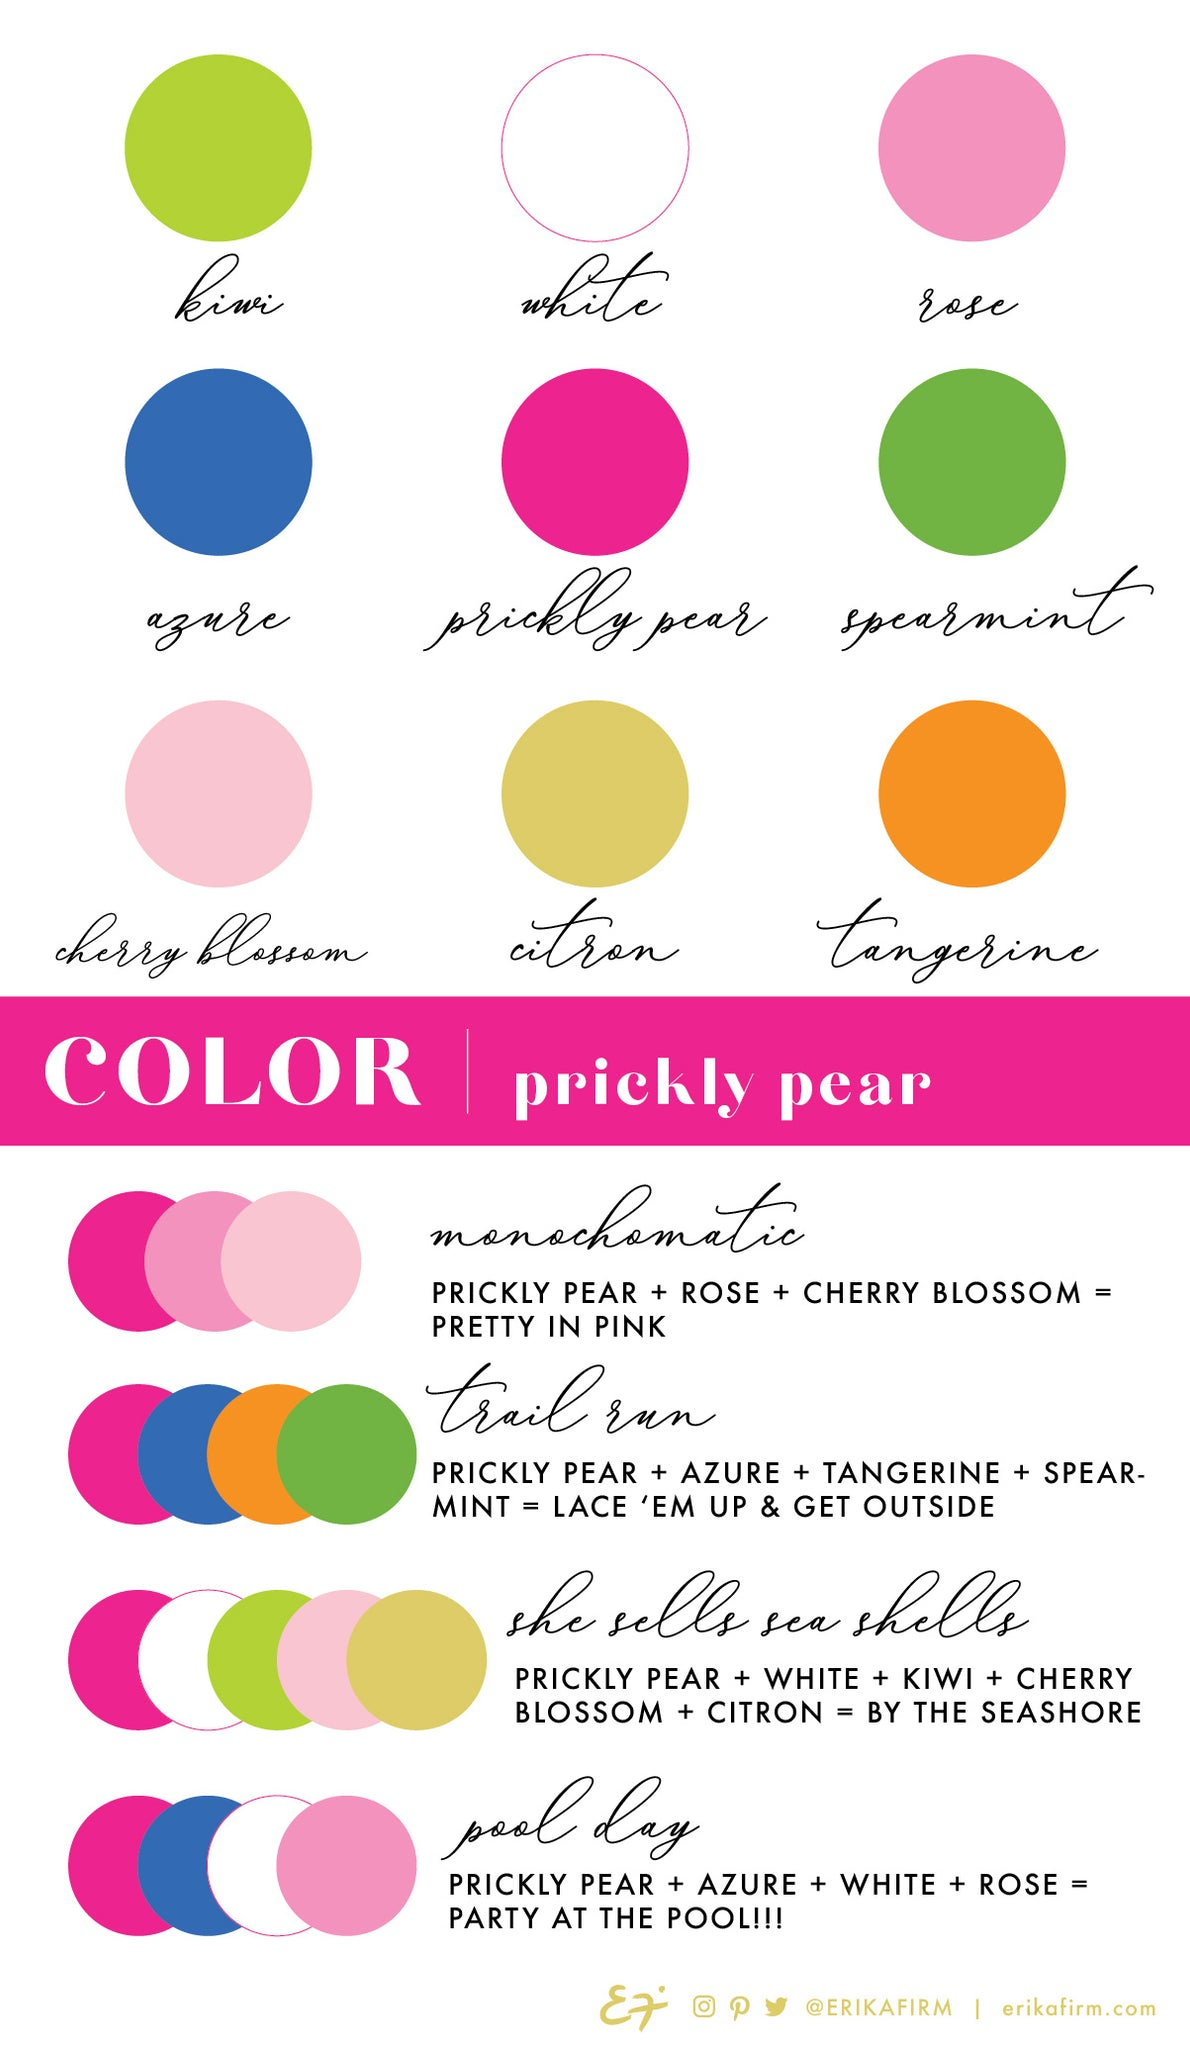 Prickly Pear color palette by Erika Firm